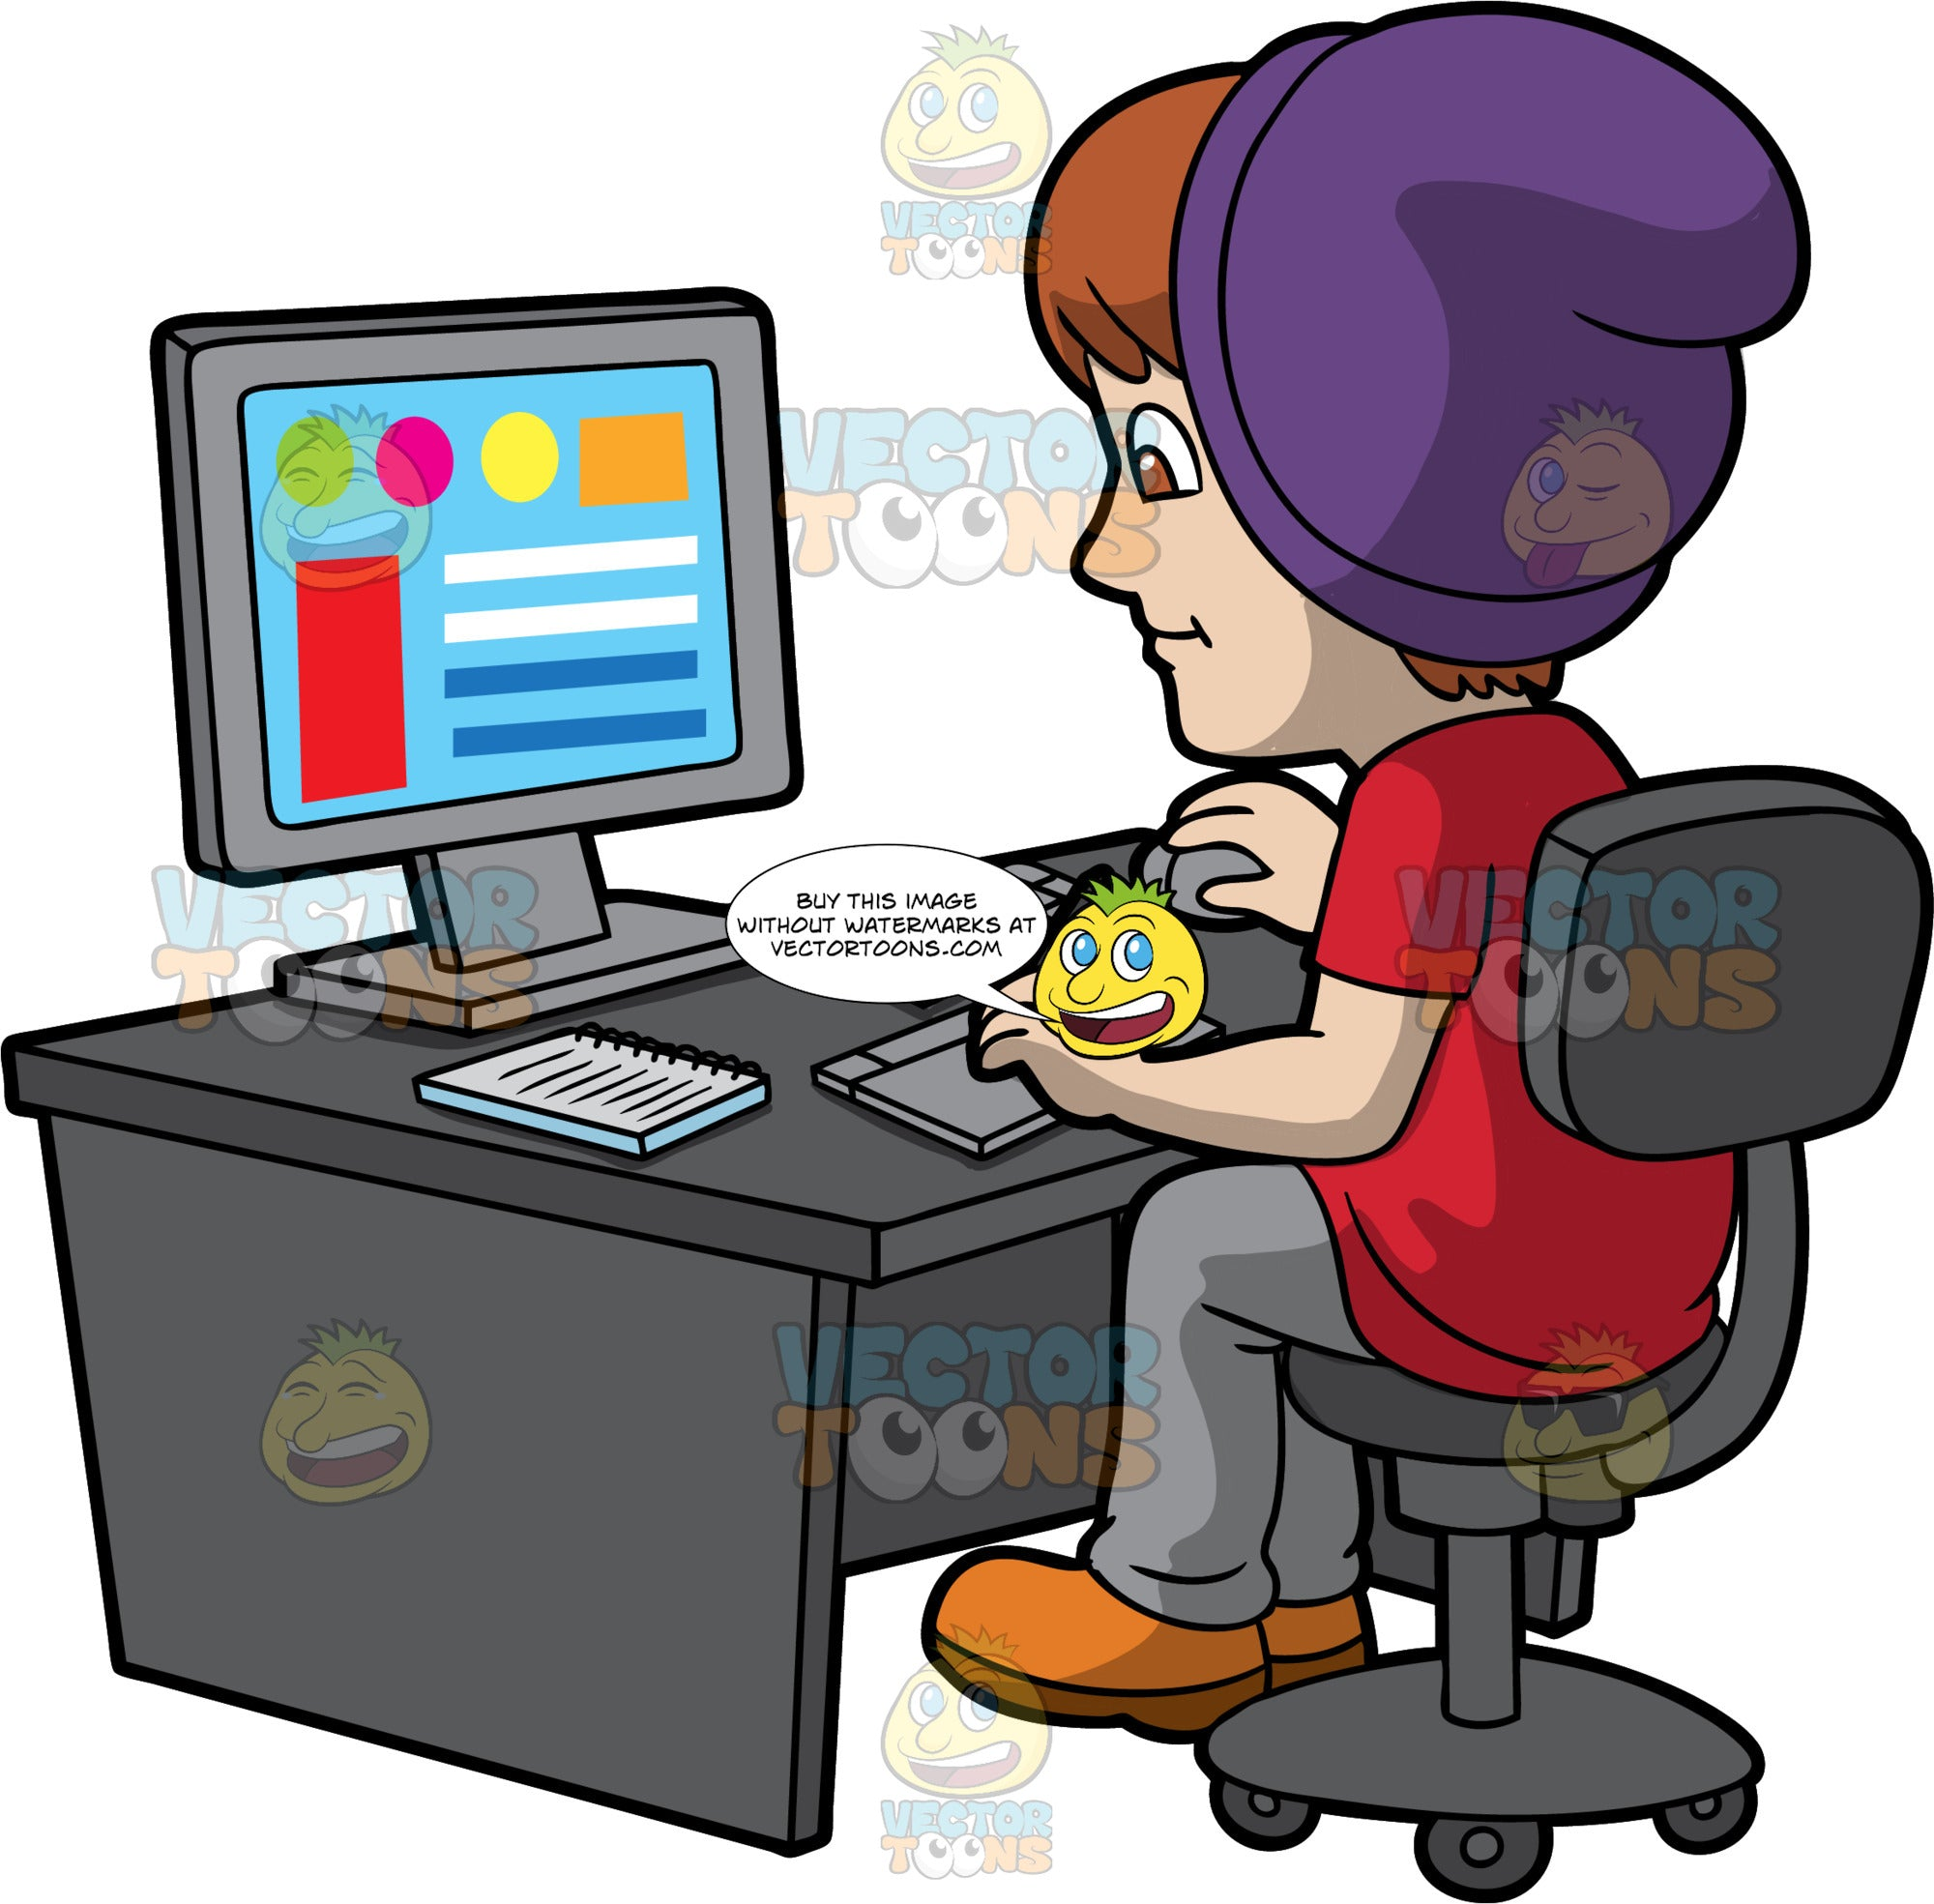 A Hipster Male Graphic Designer. A man with brown hair, wearing a red shirt, gray pants, orange boots, purple beanie, smiles while sitting on a dark gray chair behind a desk with a desktop monitor, a keyboard, notebook, and drawing pad with pen, as he designs some graphics